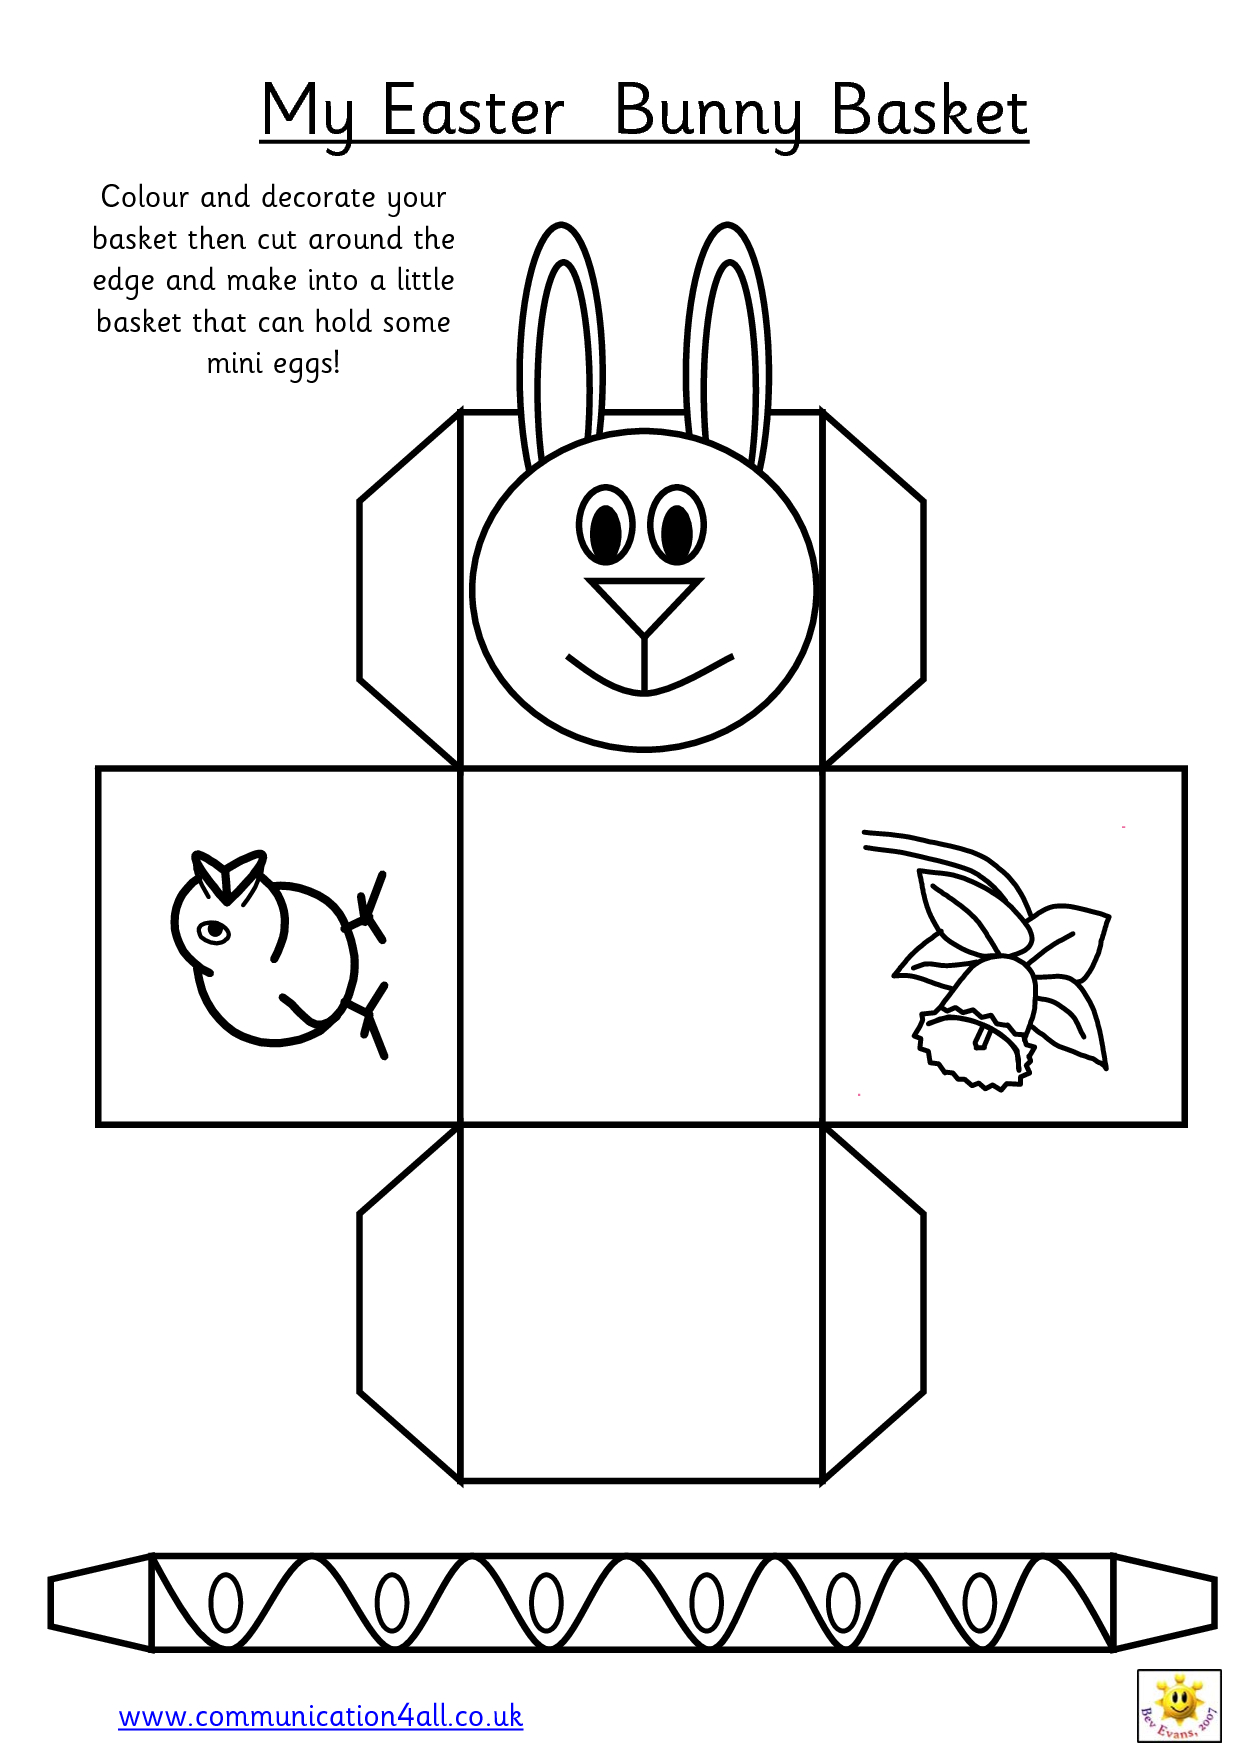 Printable Easter Egg Basket Templates – Hd Easter Images - Free Printable Easter Stuff